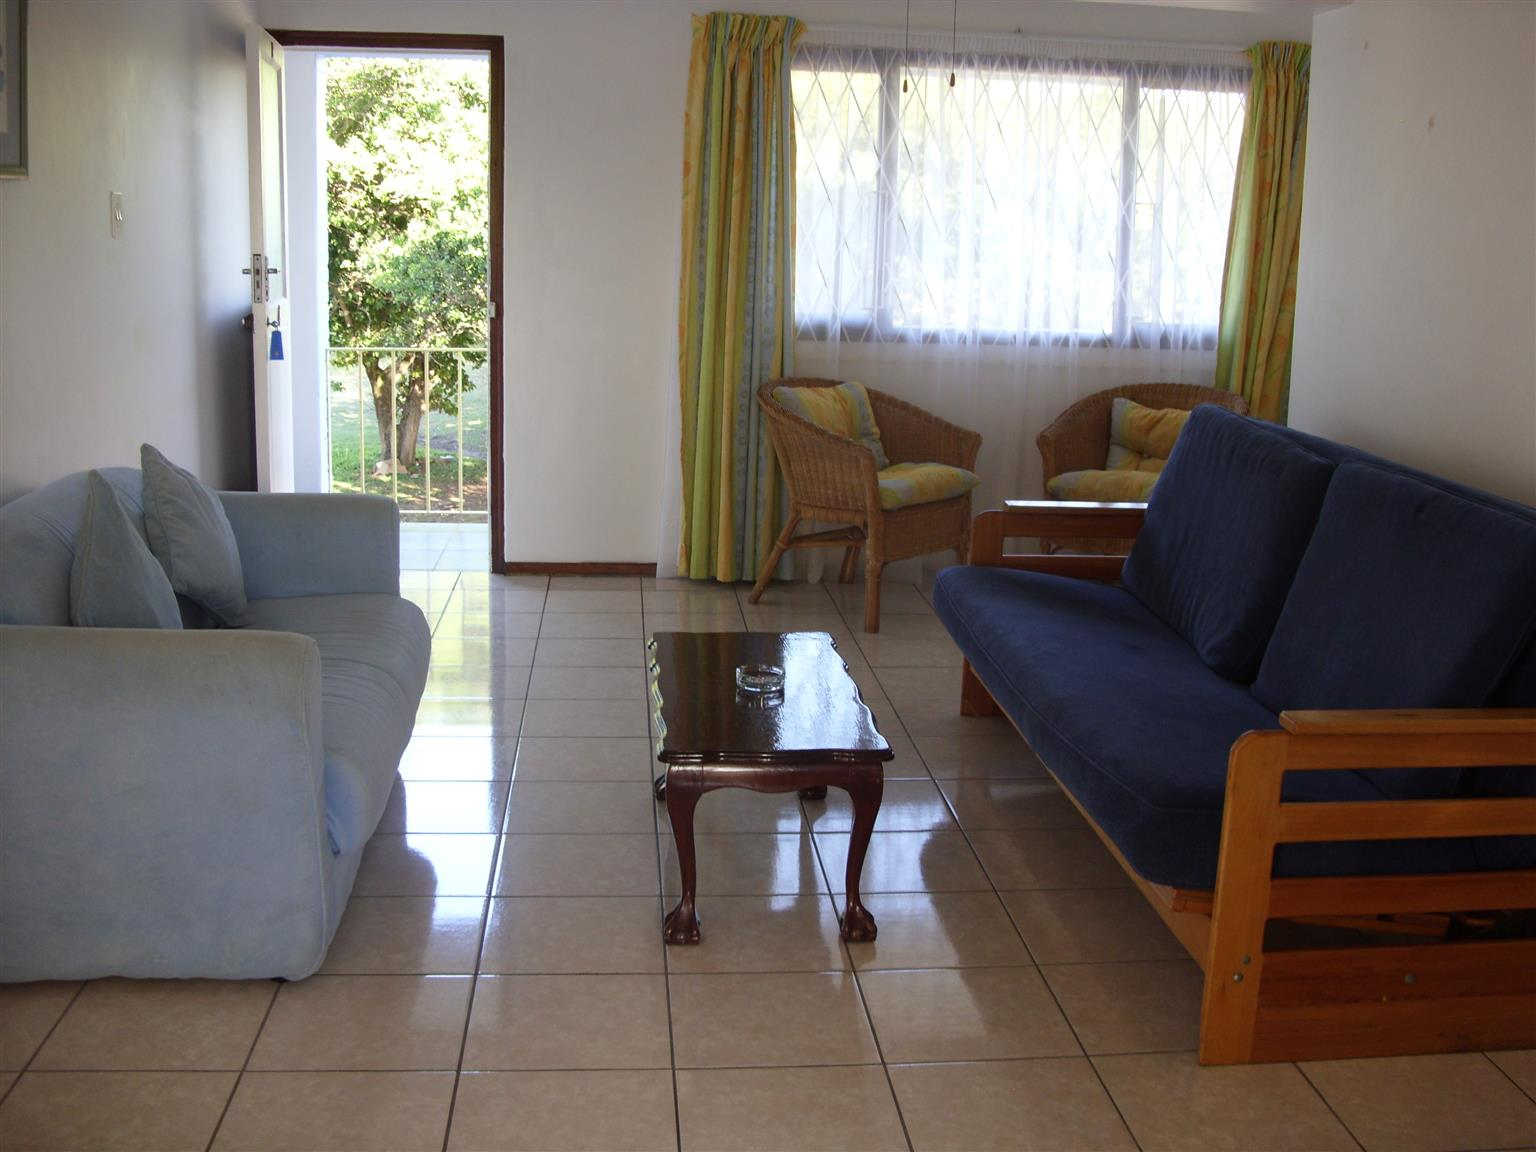 FIRST FLOOR Furnished 1 Bedroom Flat  R4150 pm conveniently situated to Shelly Beach St Mike's Uvongo January 2018